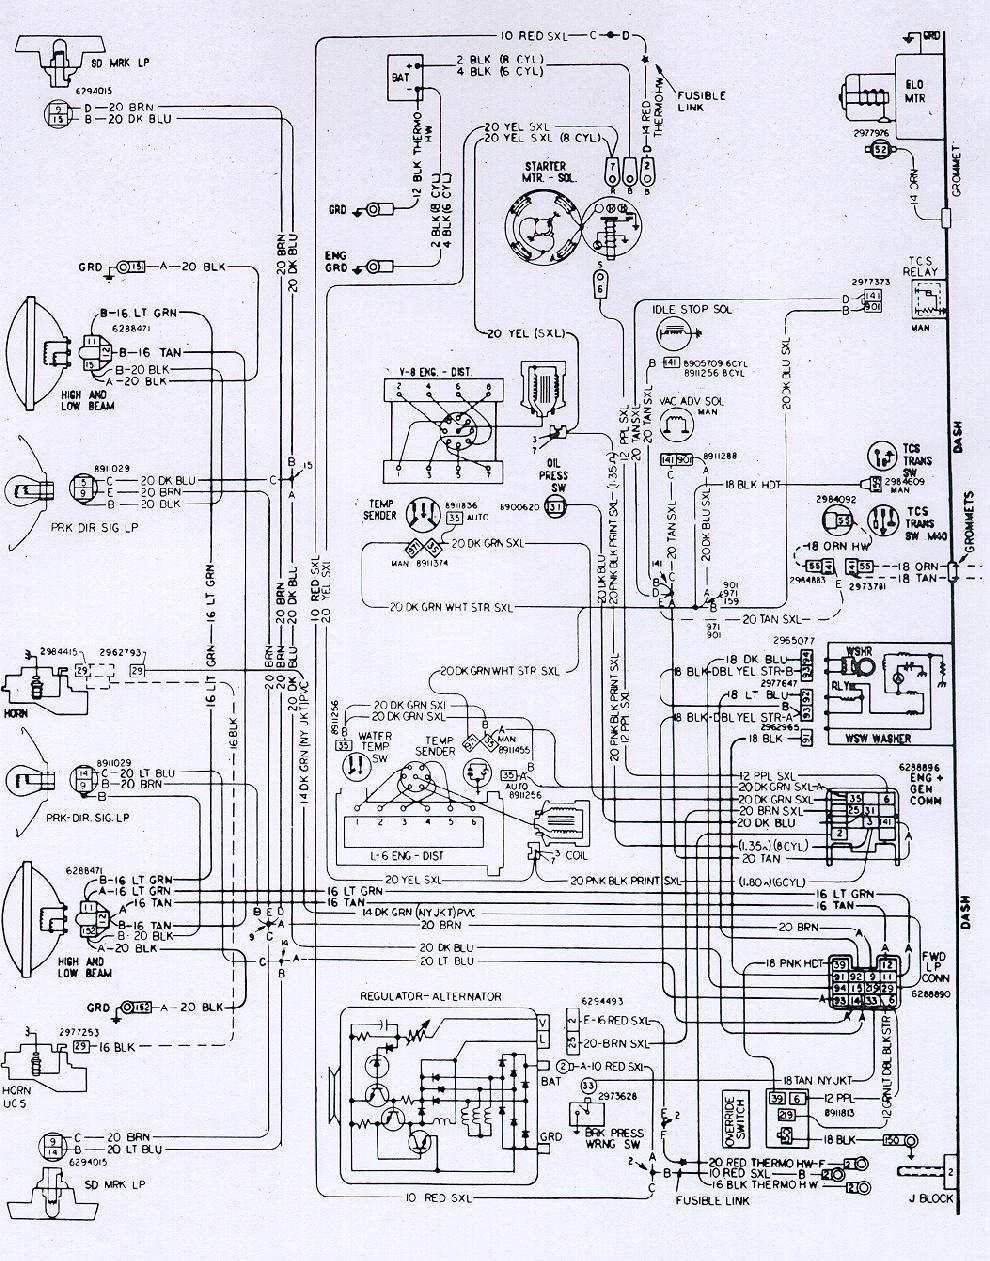 medium resolution of camaro wiring electrical information 69 chevy camaro electrical diagram 1970 camaro wiring diagram as well chevy